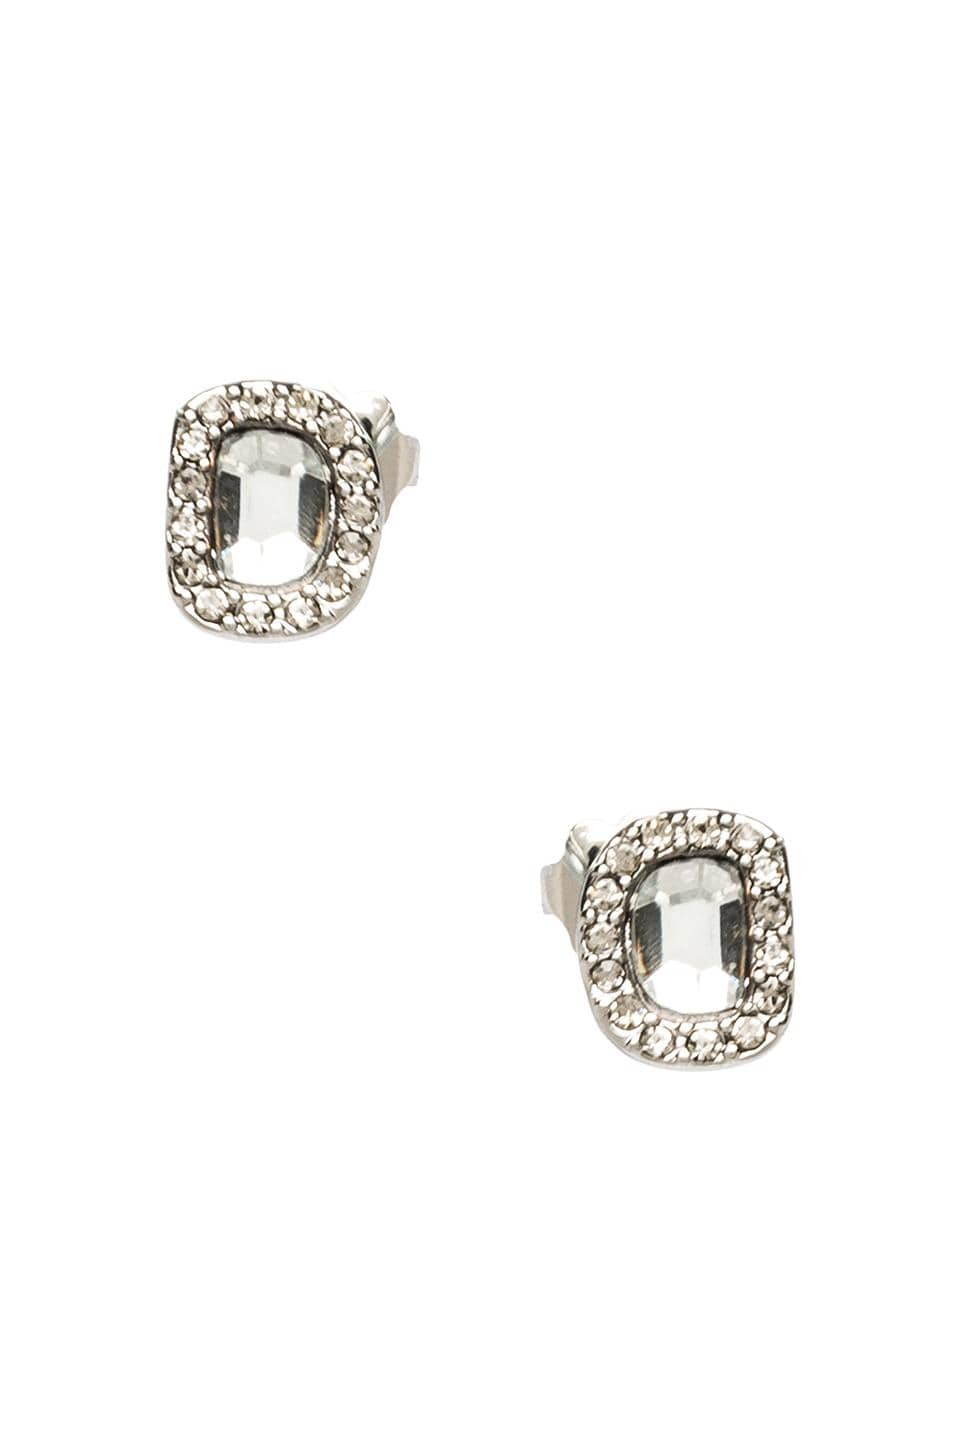 Rebecca Minkoff Mirror Stud Earrings in Rhodium